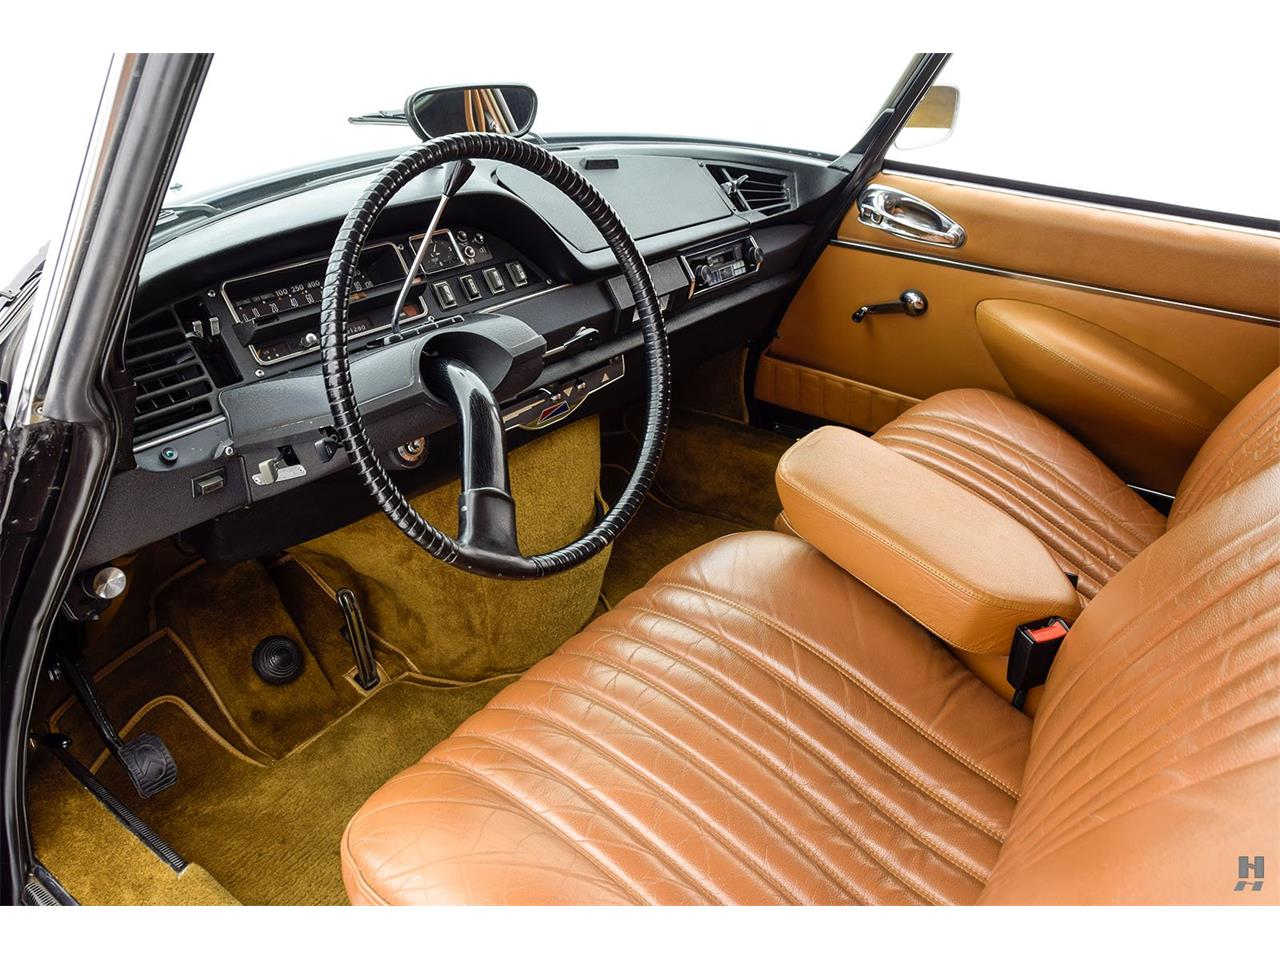 Large Picture of Classic '69 DS21 Pallas Offered by Hyman Ltd. Classic Cars - OVD1